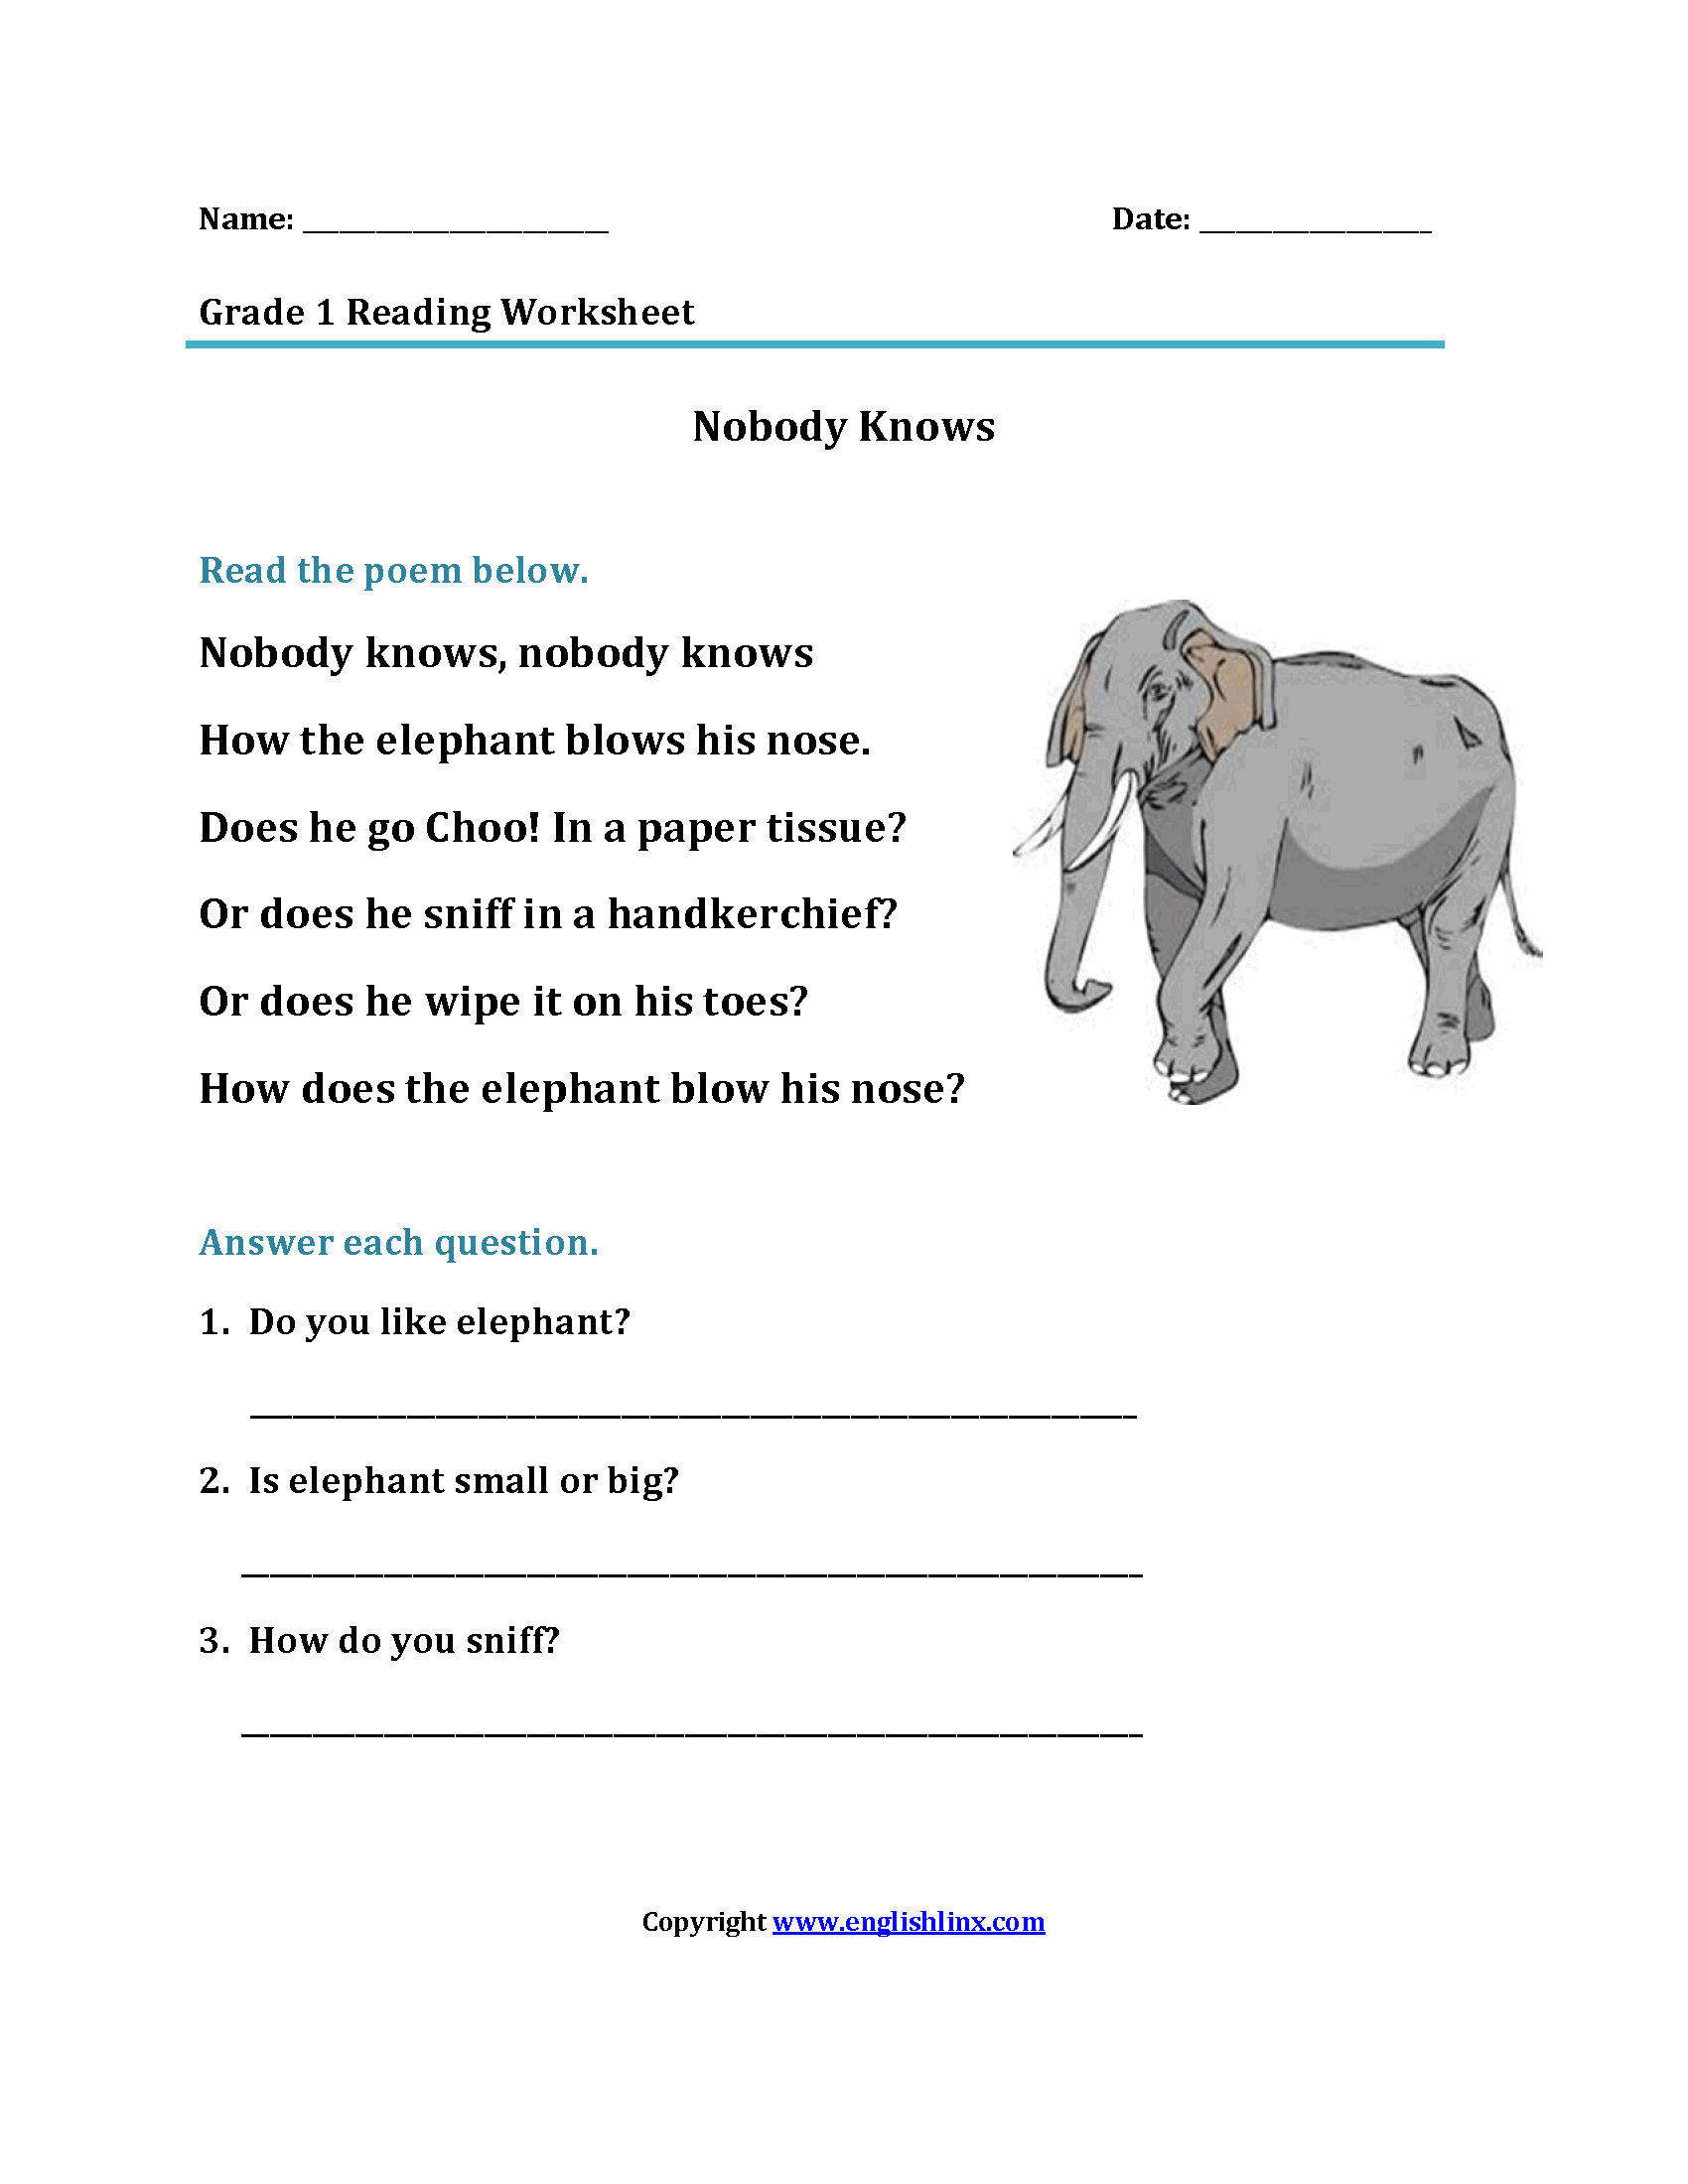 Printables Of Reading Exercises For Grade 1